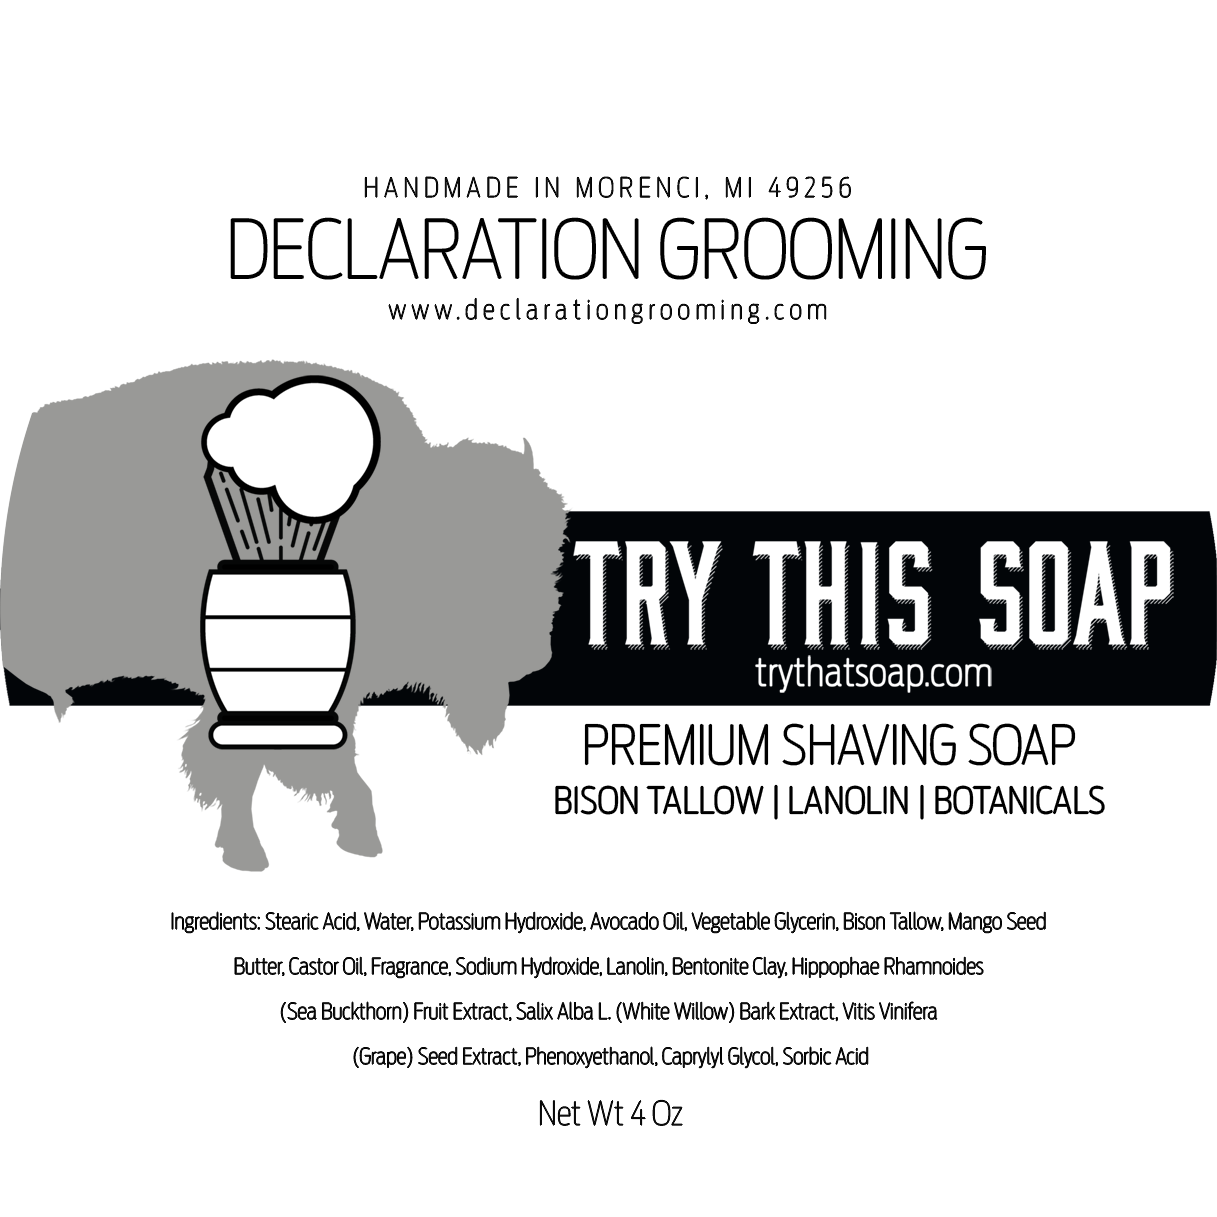 Declaration Grooming - Try This Soap - Soap image